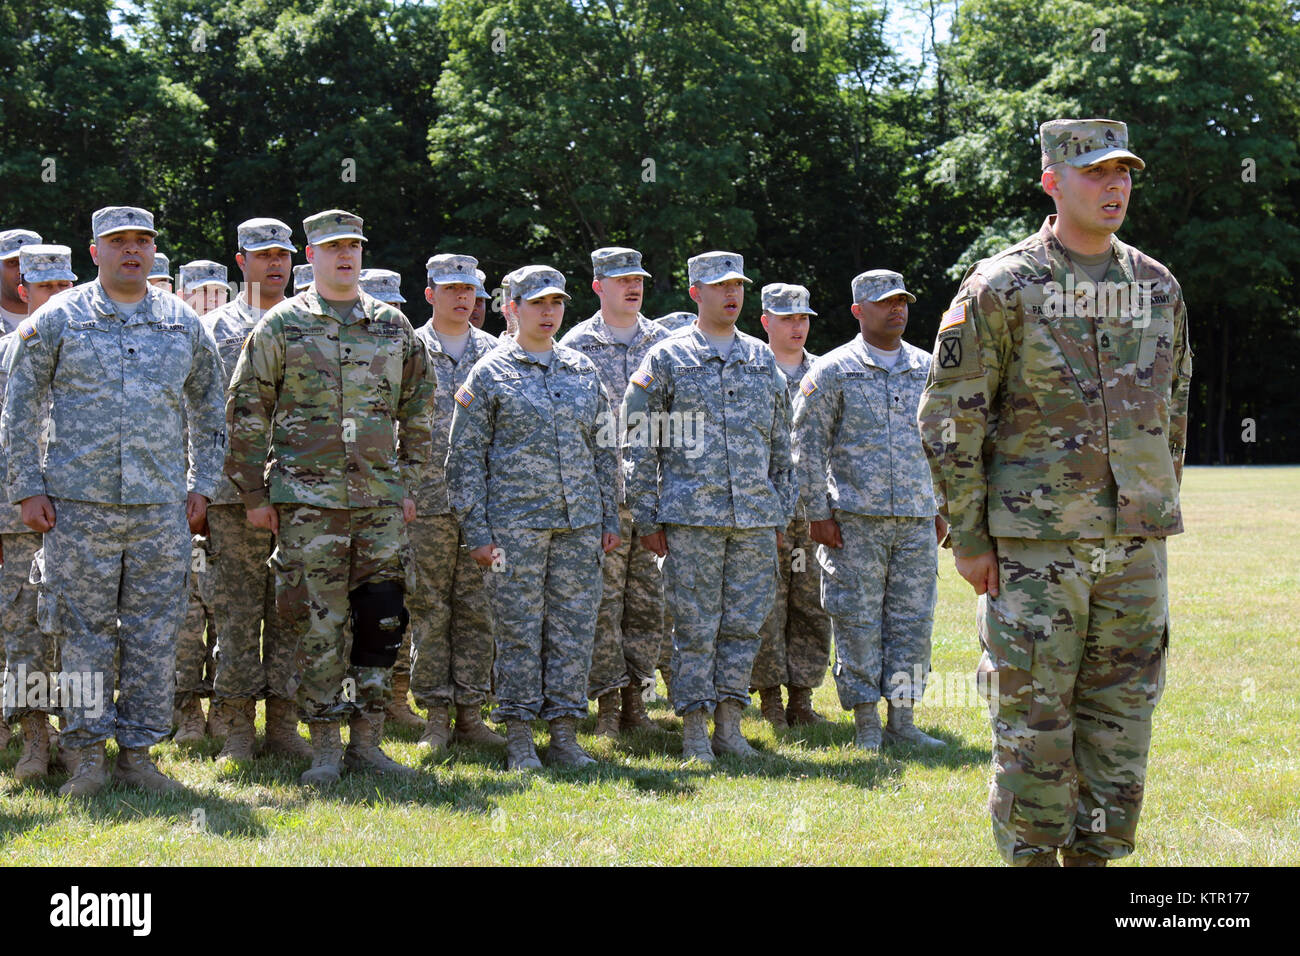 CORTLANDT MANOR, N.Y. -- Sgt. 1st Class Ryan Padilla, of the New York Army National Guard's 42nd Division Signal Stock Photo